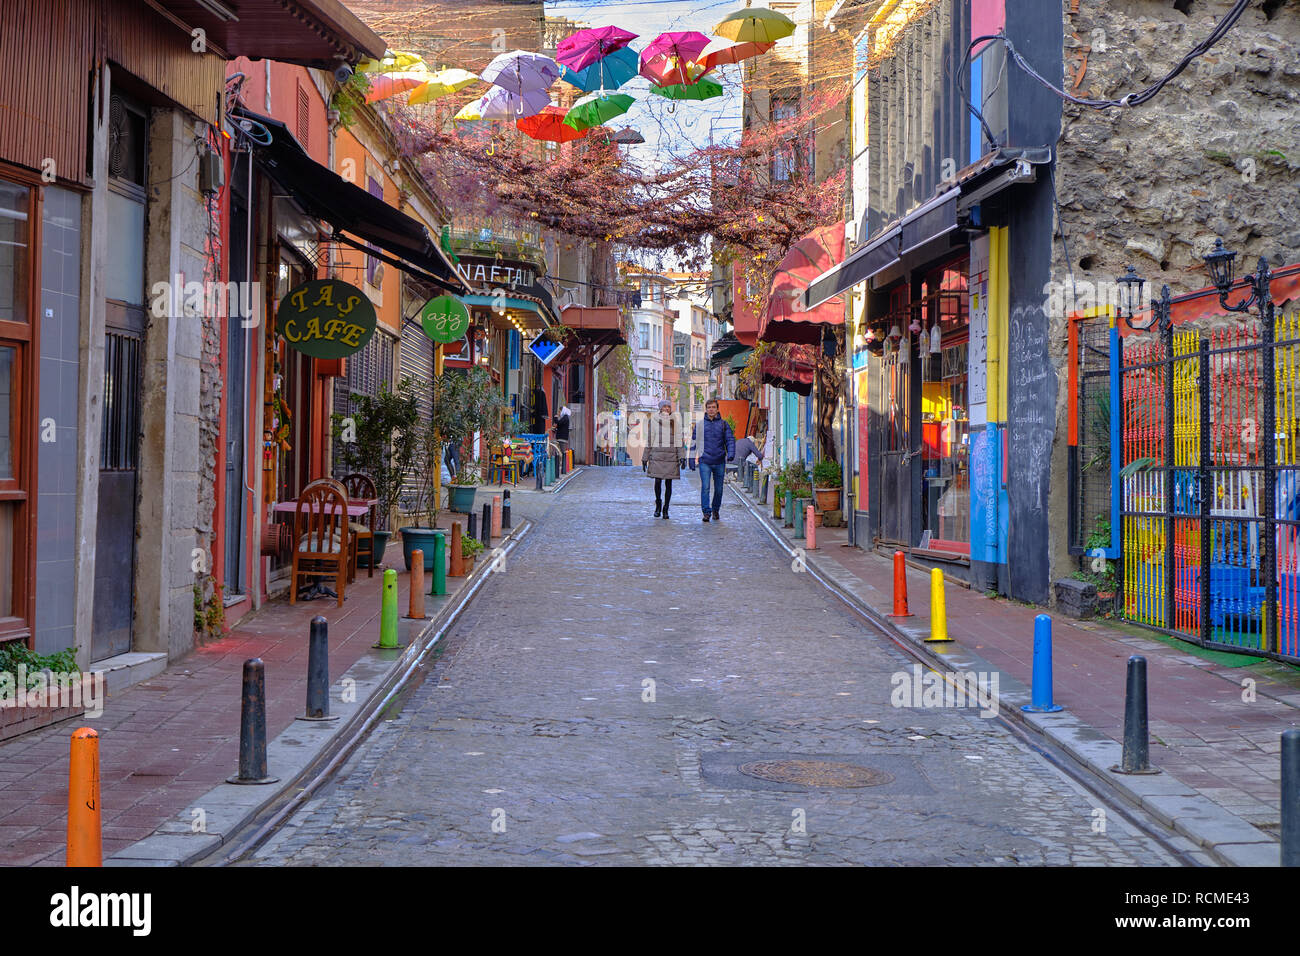 pedestrian-walking-down-a-street-in-colorful-balat-area-of-istanbul-on-a-cold-december-day-RCME43.jpg